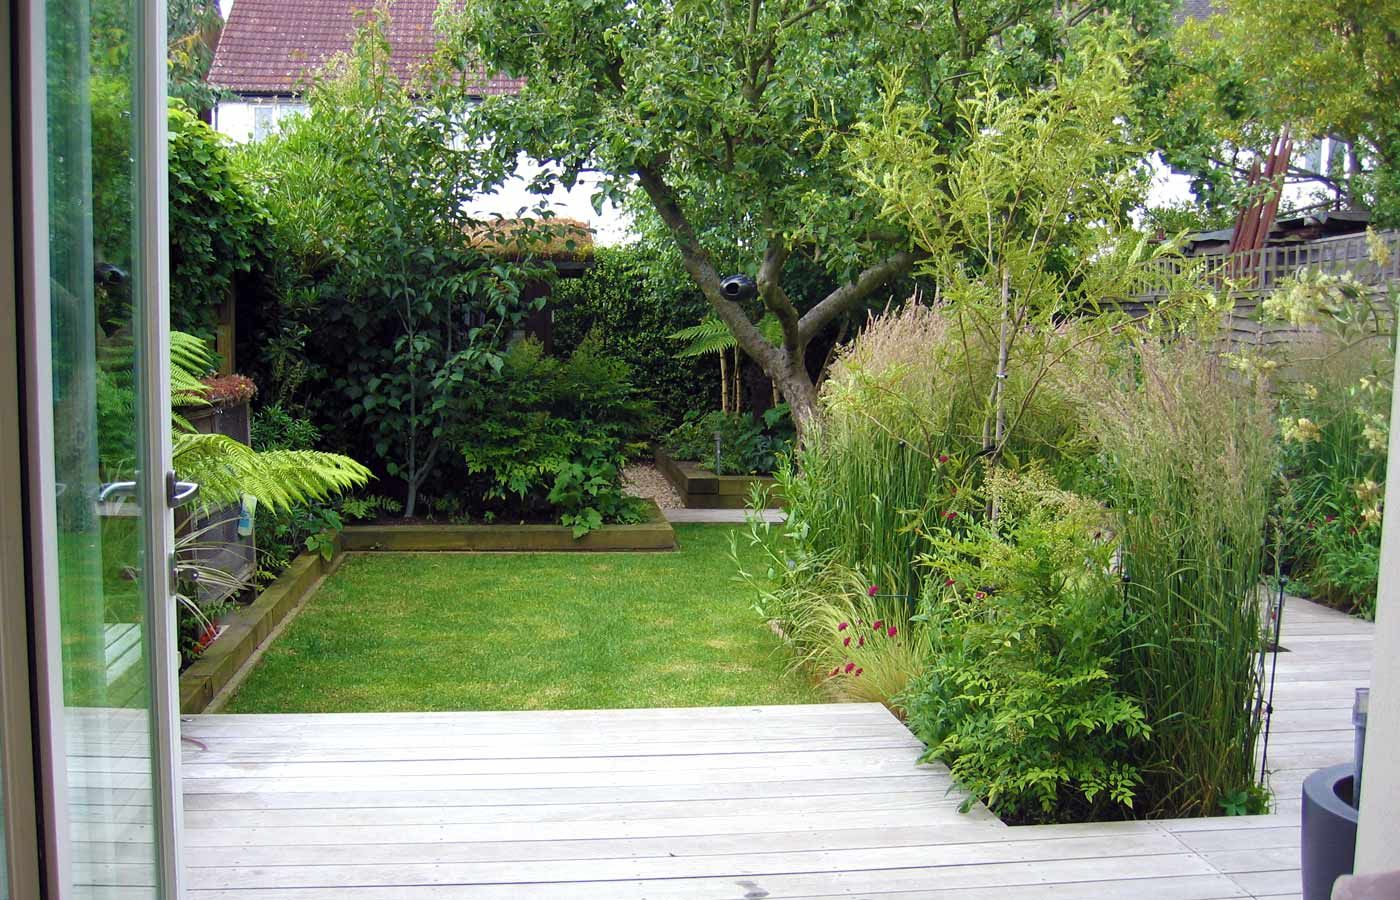 small trees for lawn | Lawn and decing in small North London ...